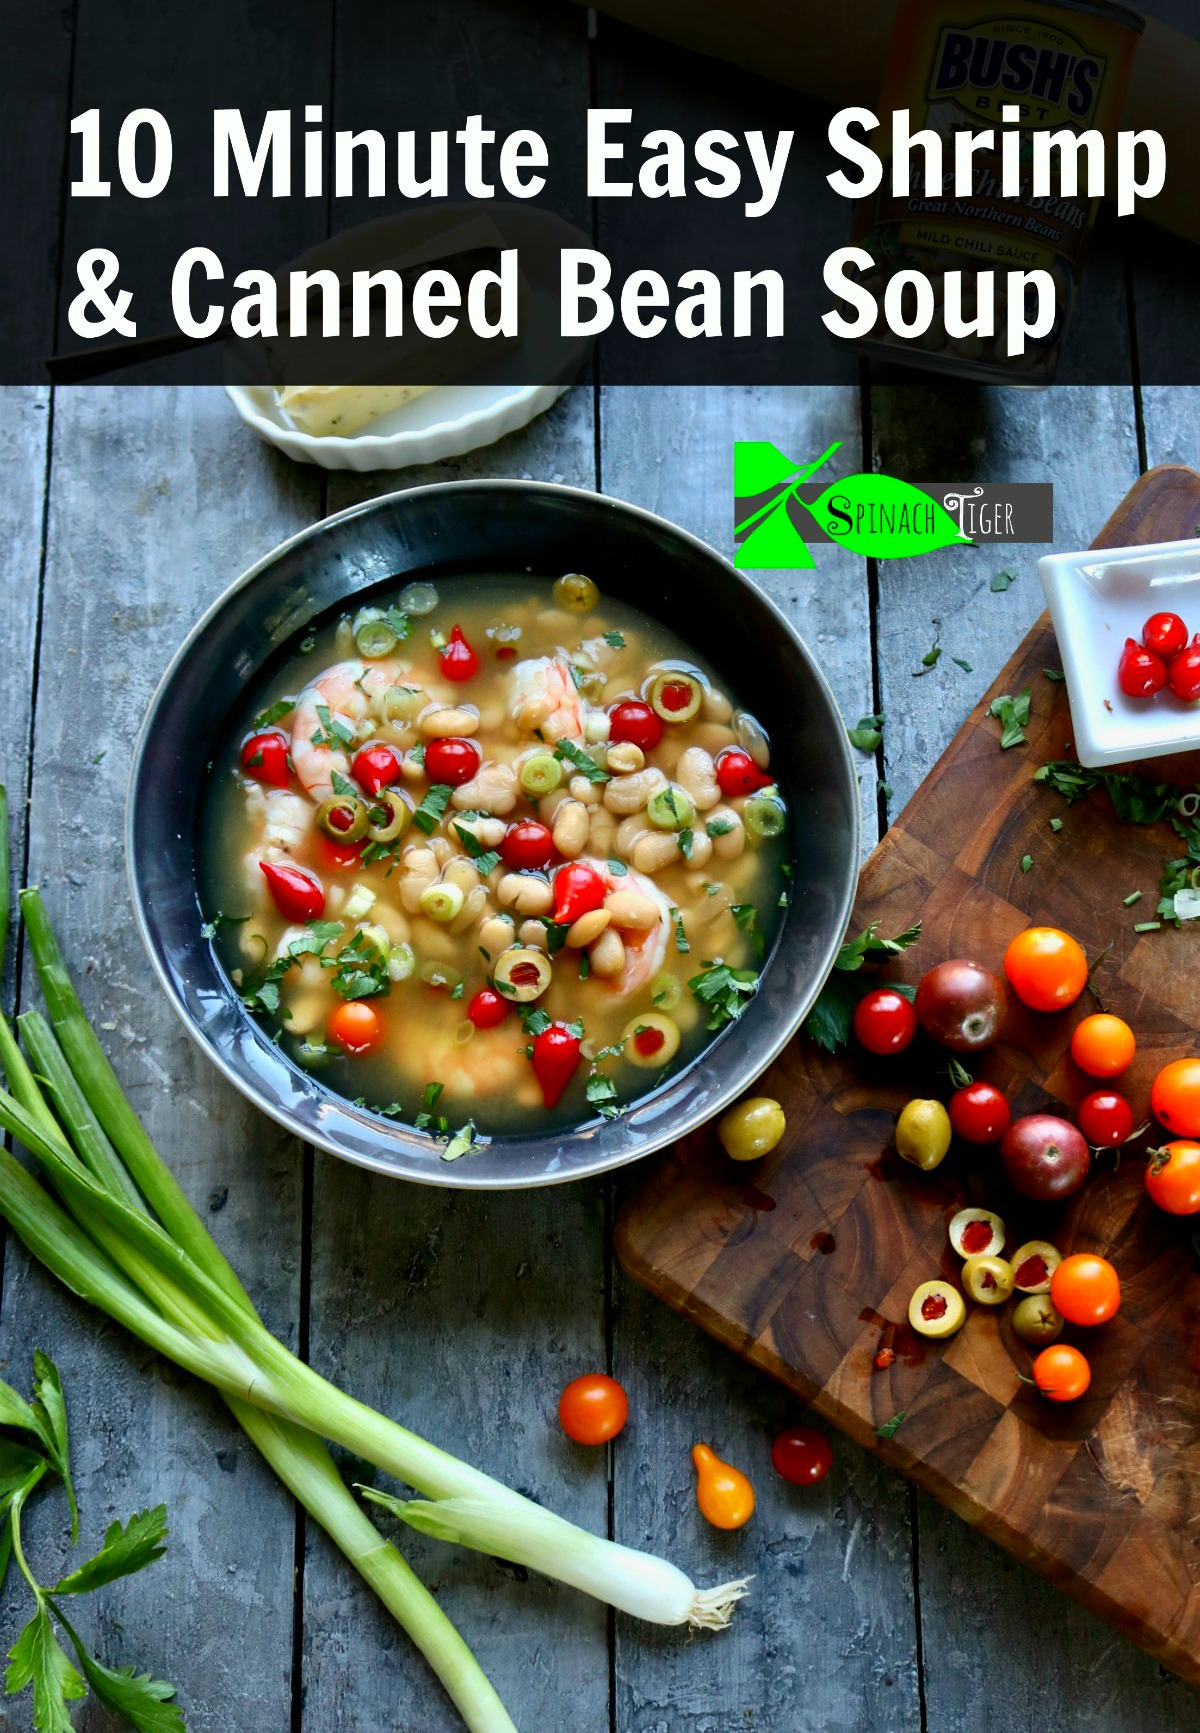 Easy Shrimp White Bean Soup made with frozen shrimp, olives, and canned white beans. #shrimpsoup #beansoup #shrimpwhitebeansoup #cannedbeans via @angelaroberts